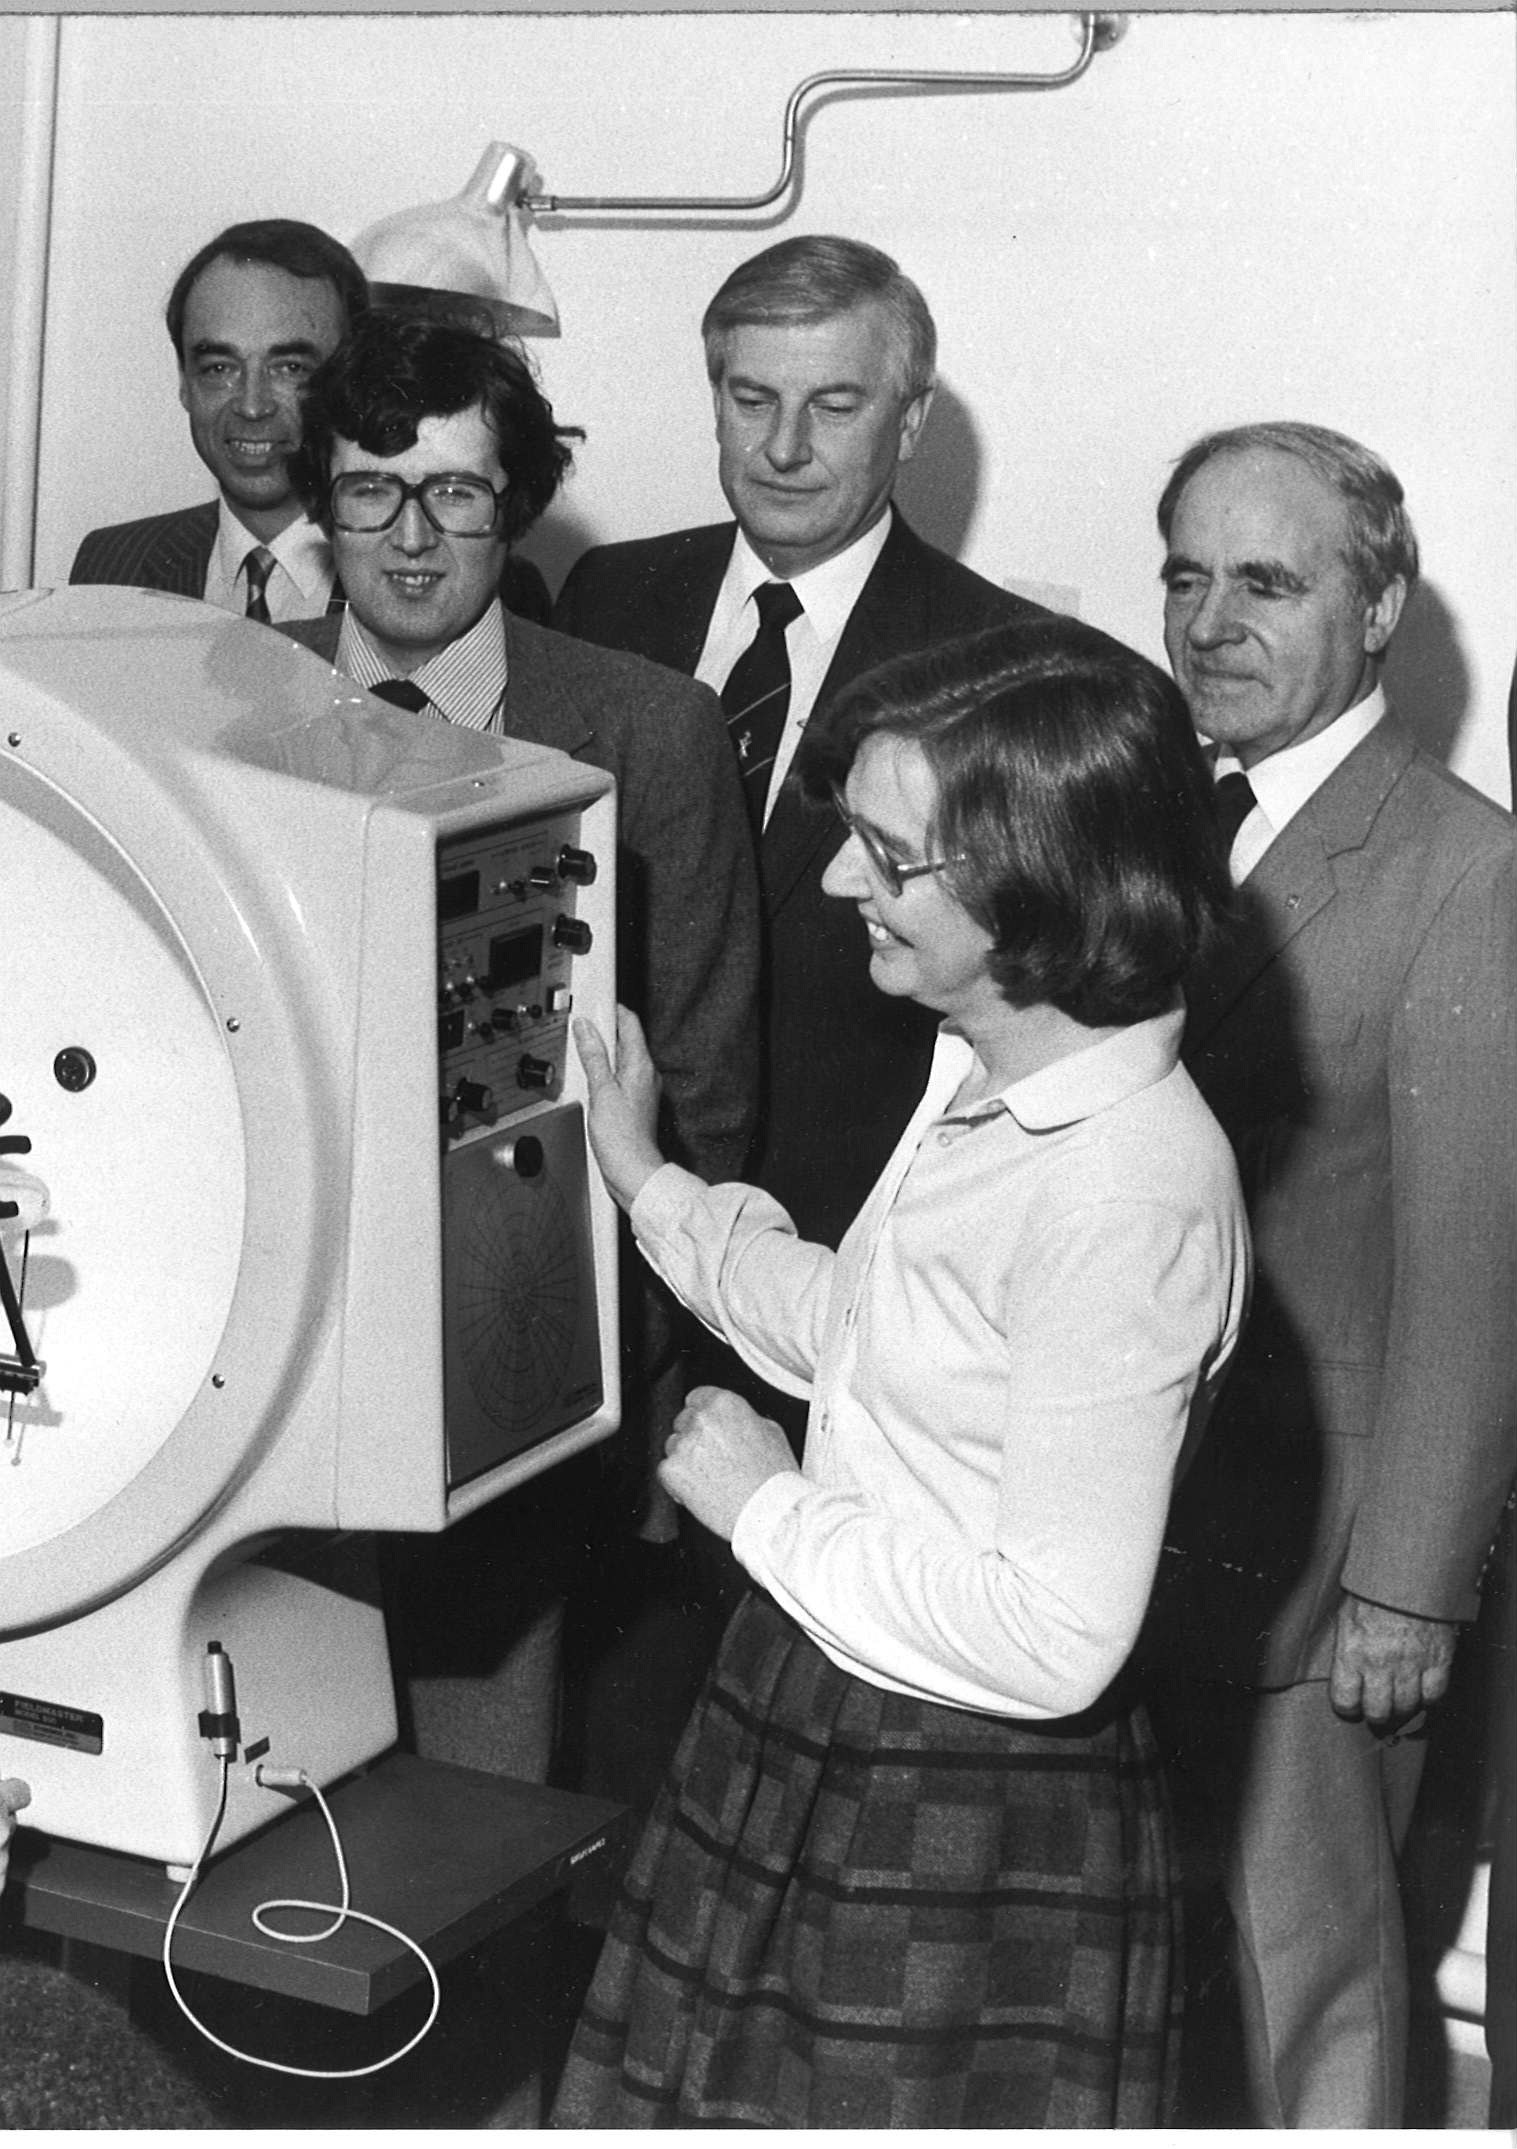 Automated field detector handed over to eye department in 1982